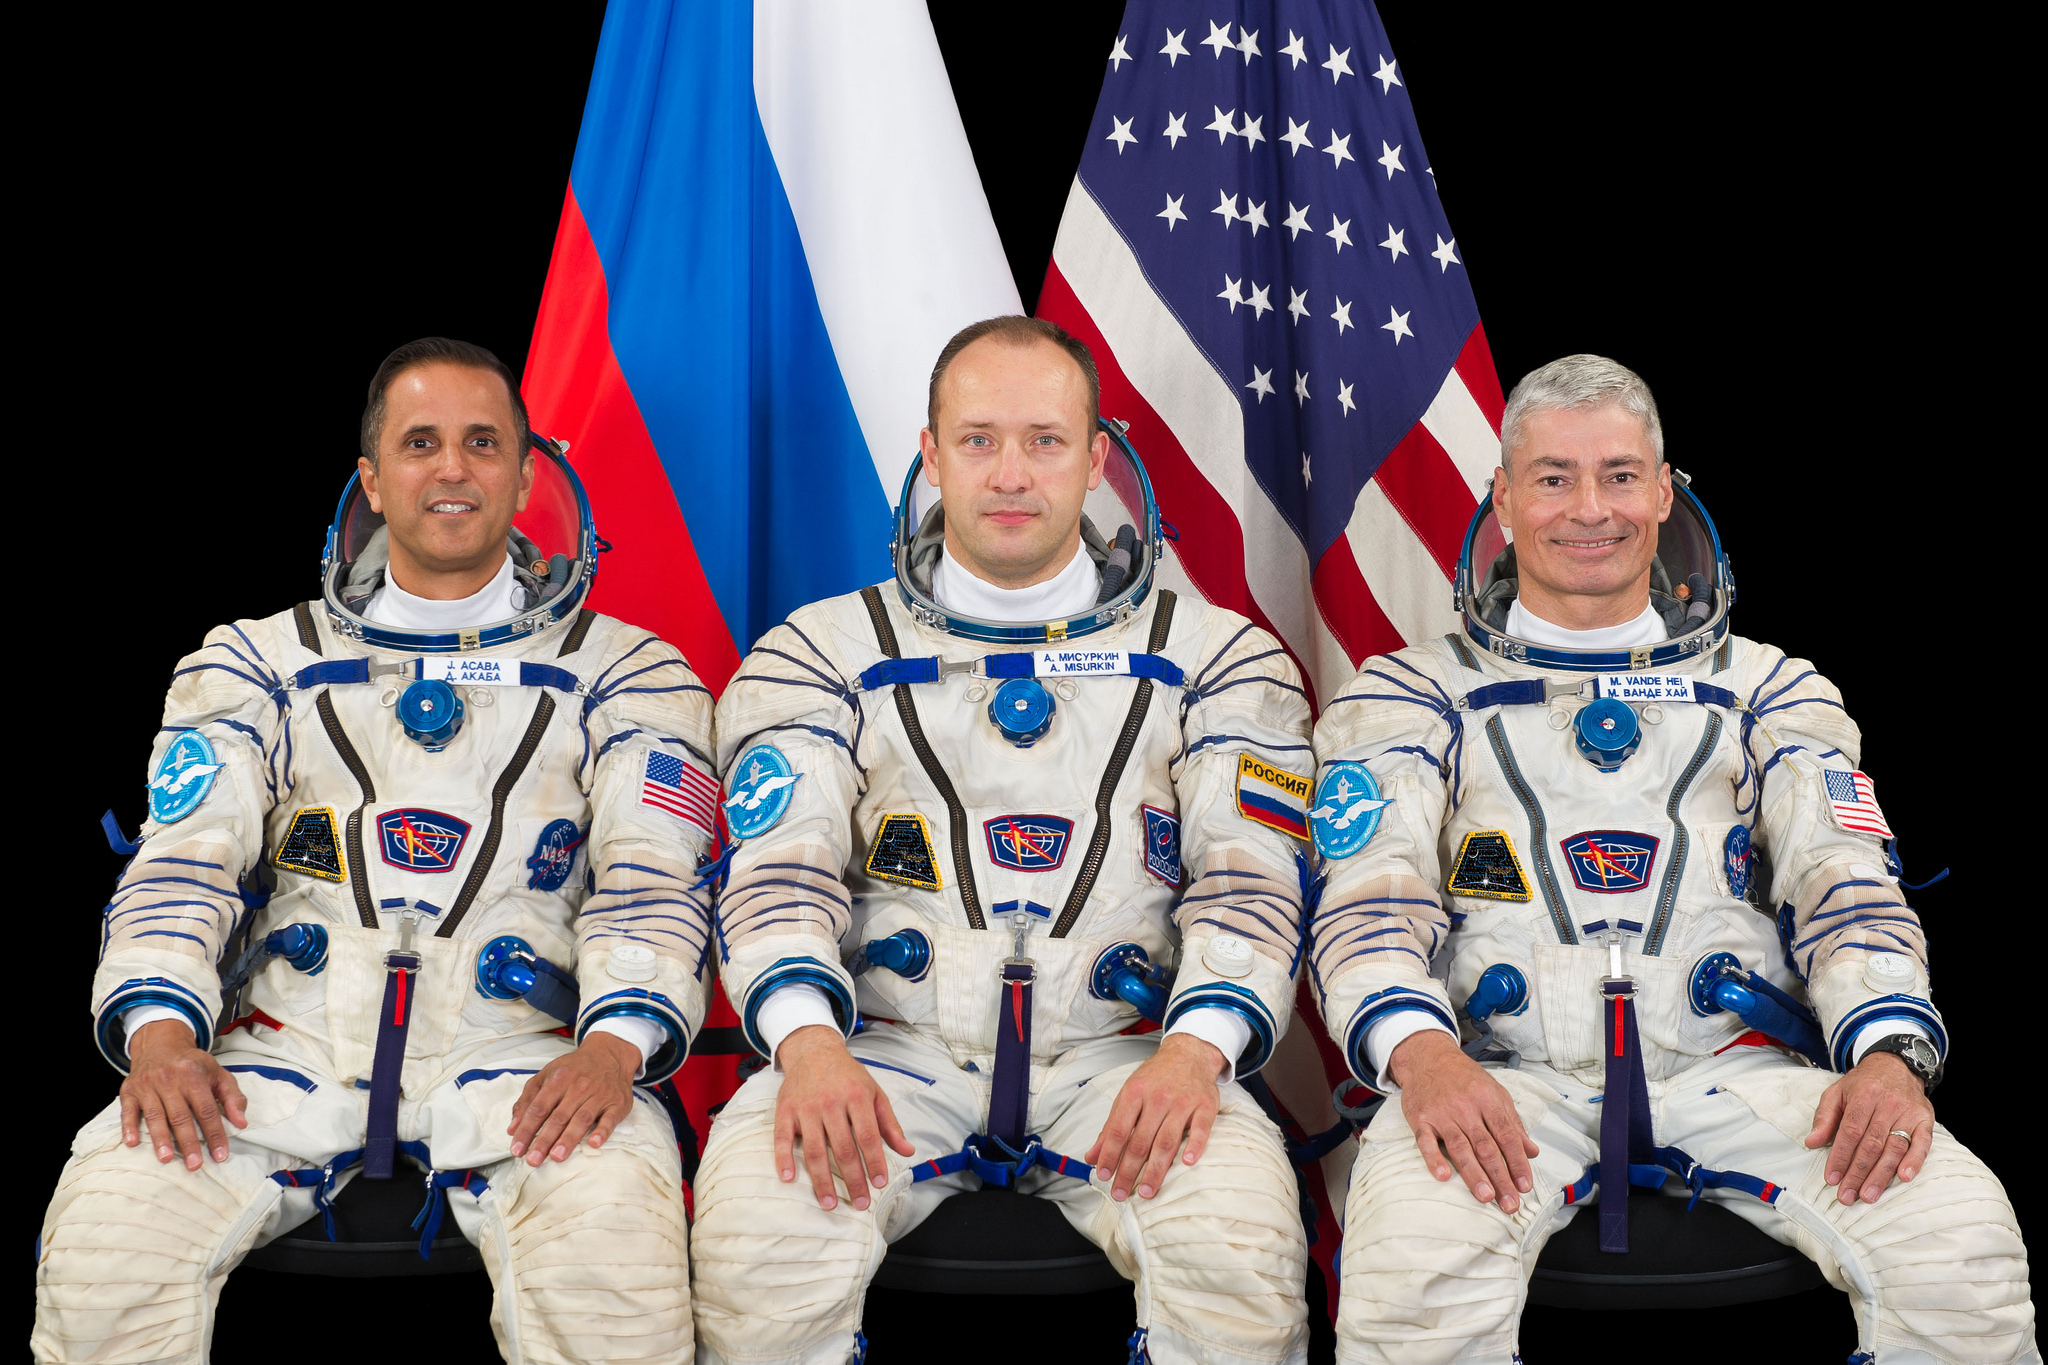 NASA Astronauts Available for Interviews Before Space Station Mission